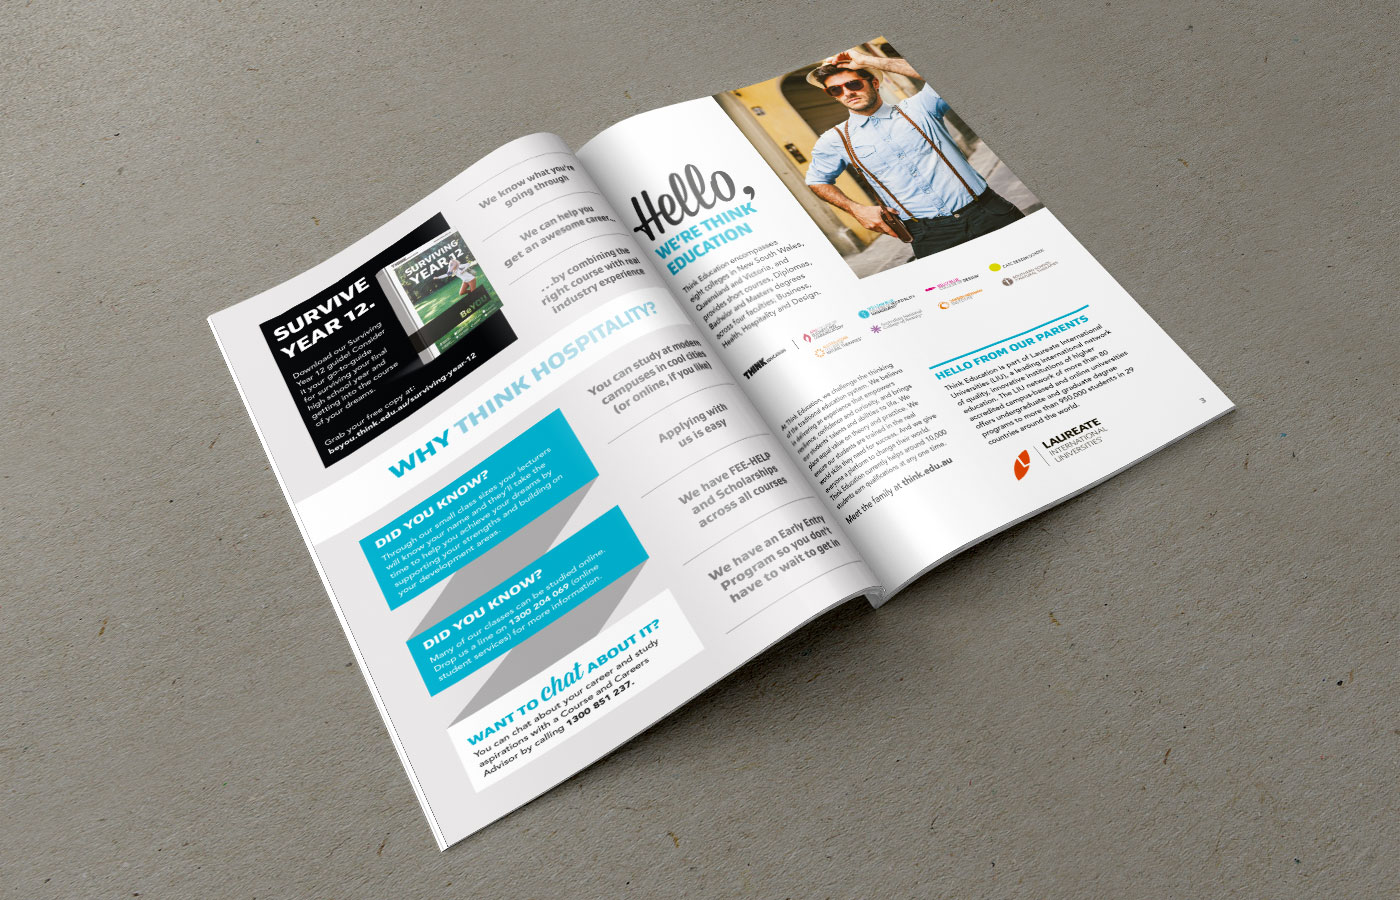 Think-Education-Design-Finished-Art-Brochure-Hospitality-Spread